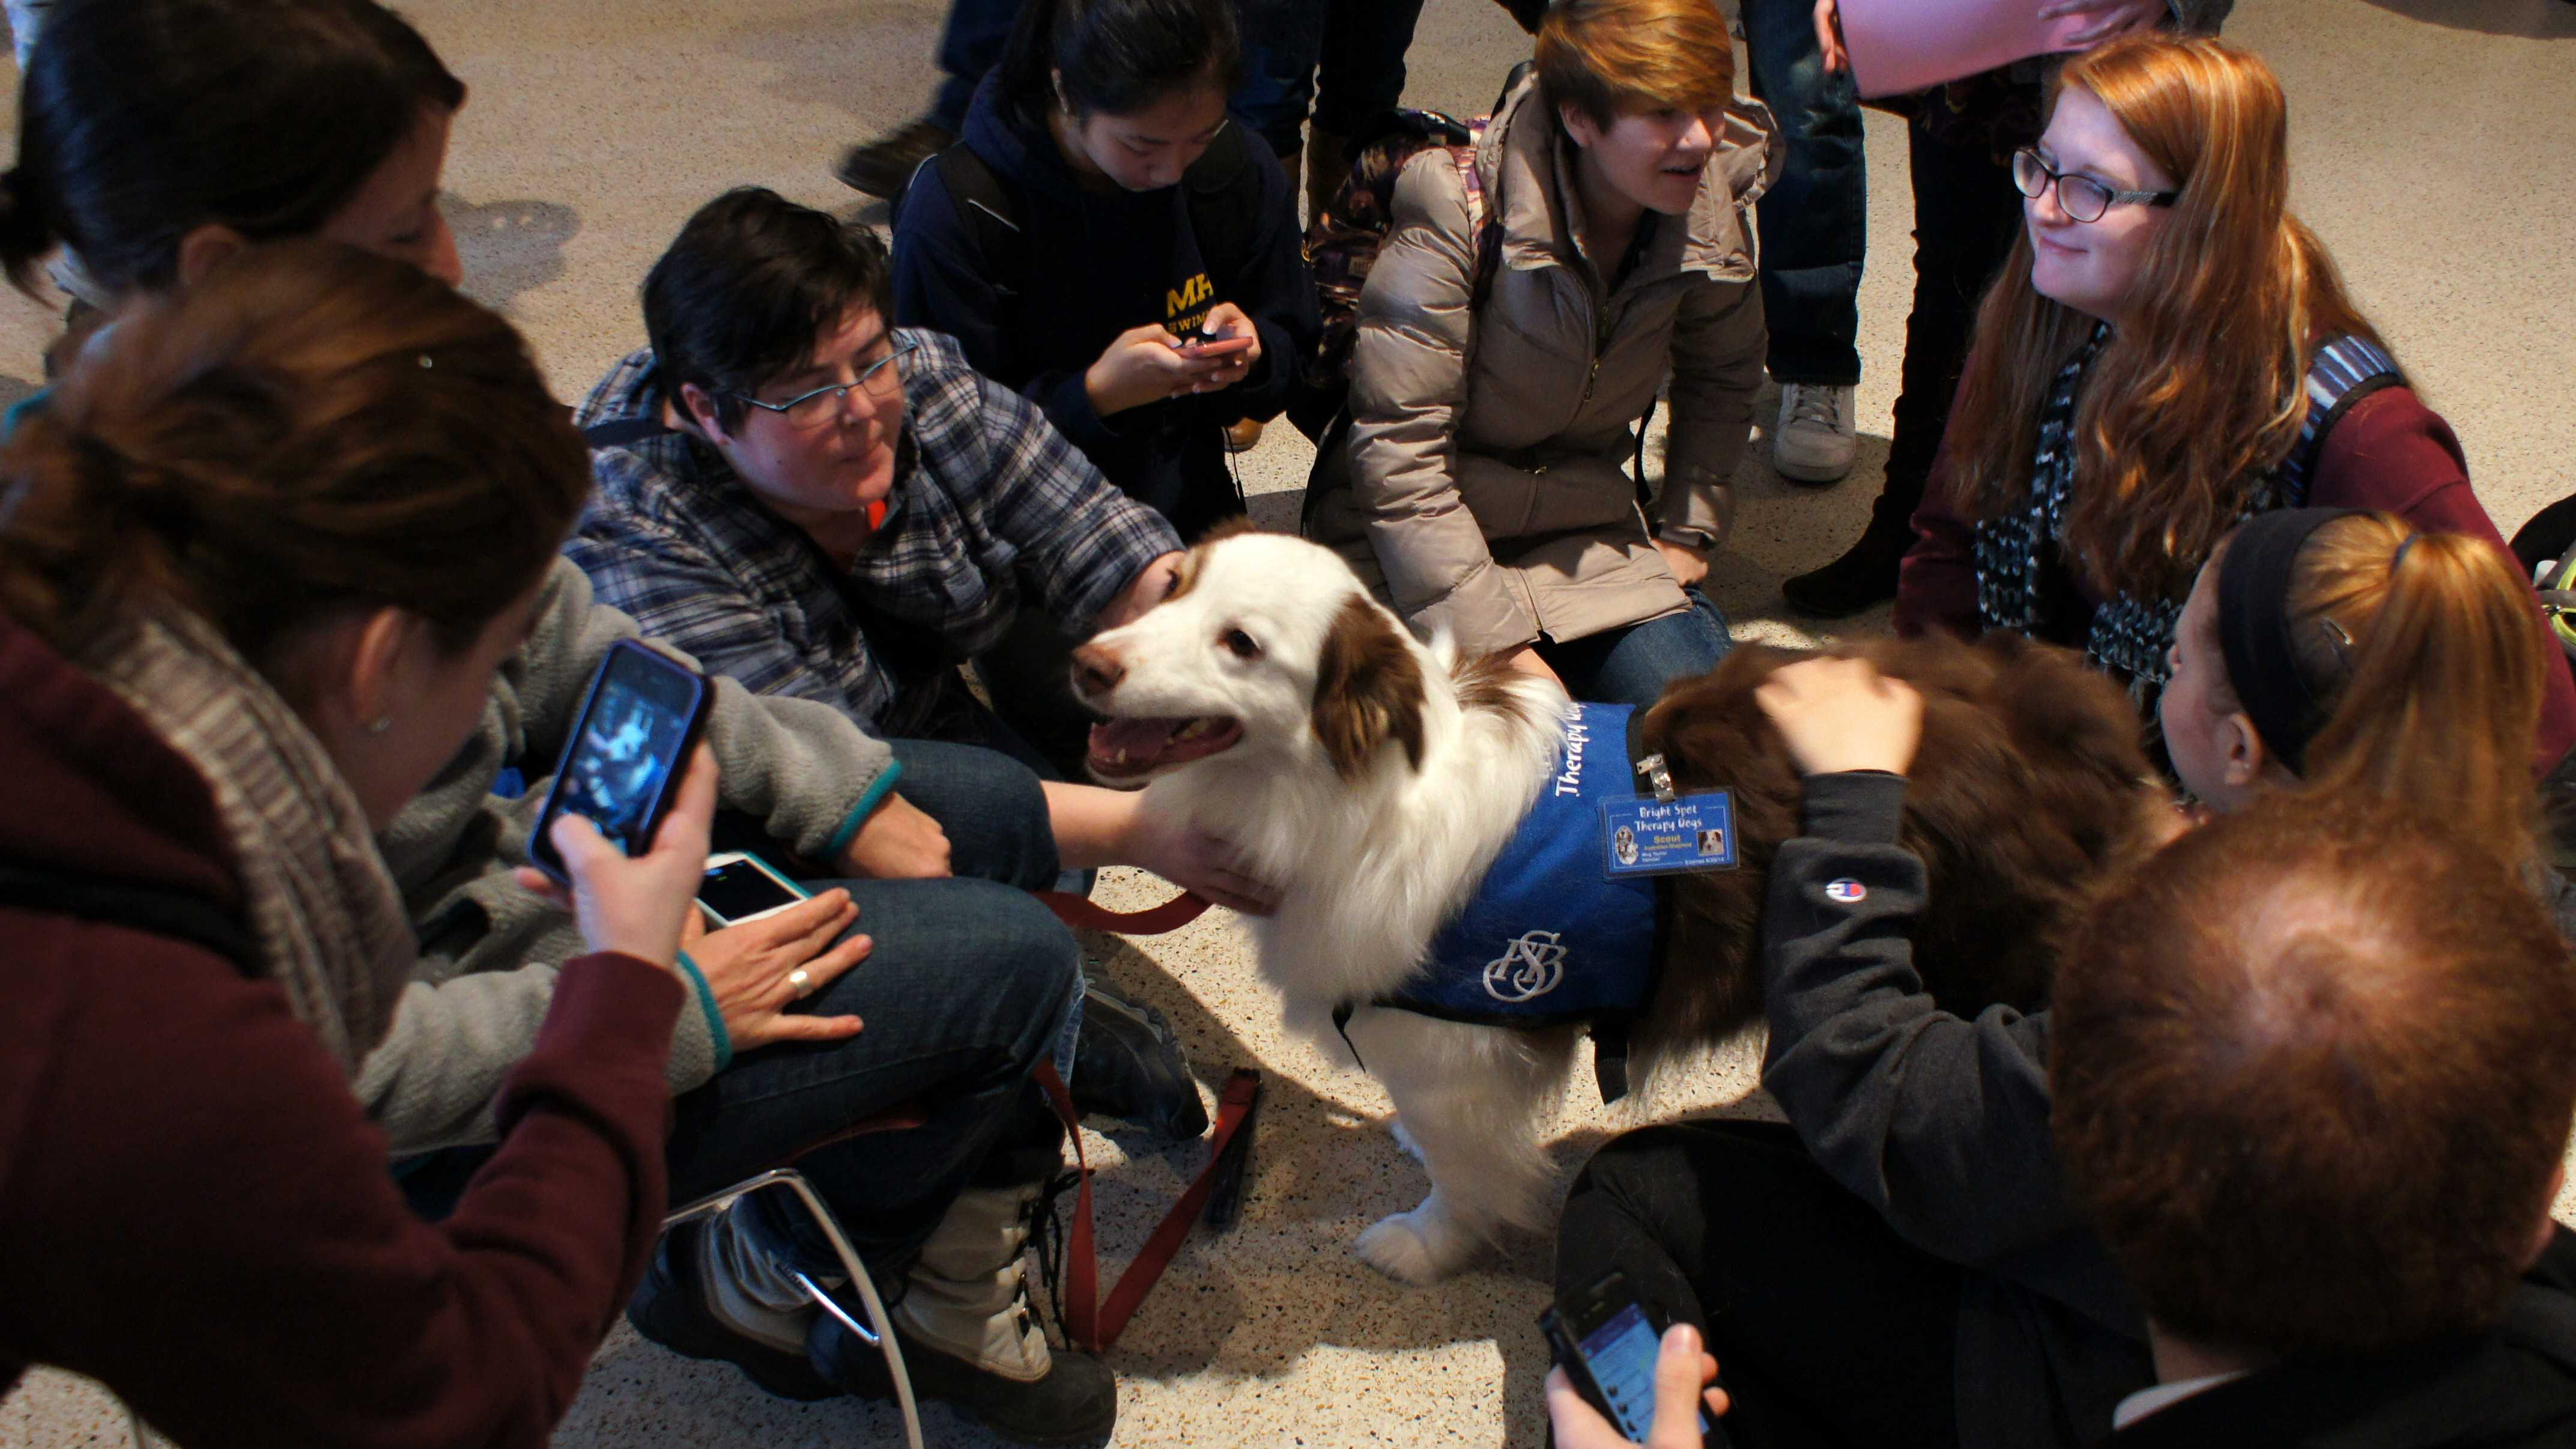 SLIDESHOW: Therapy Dogs at UMass